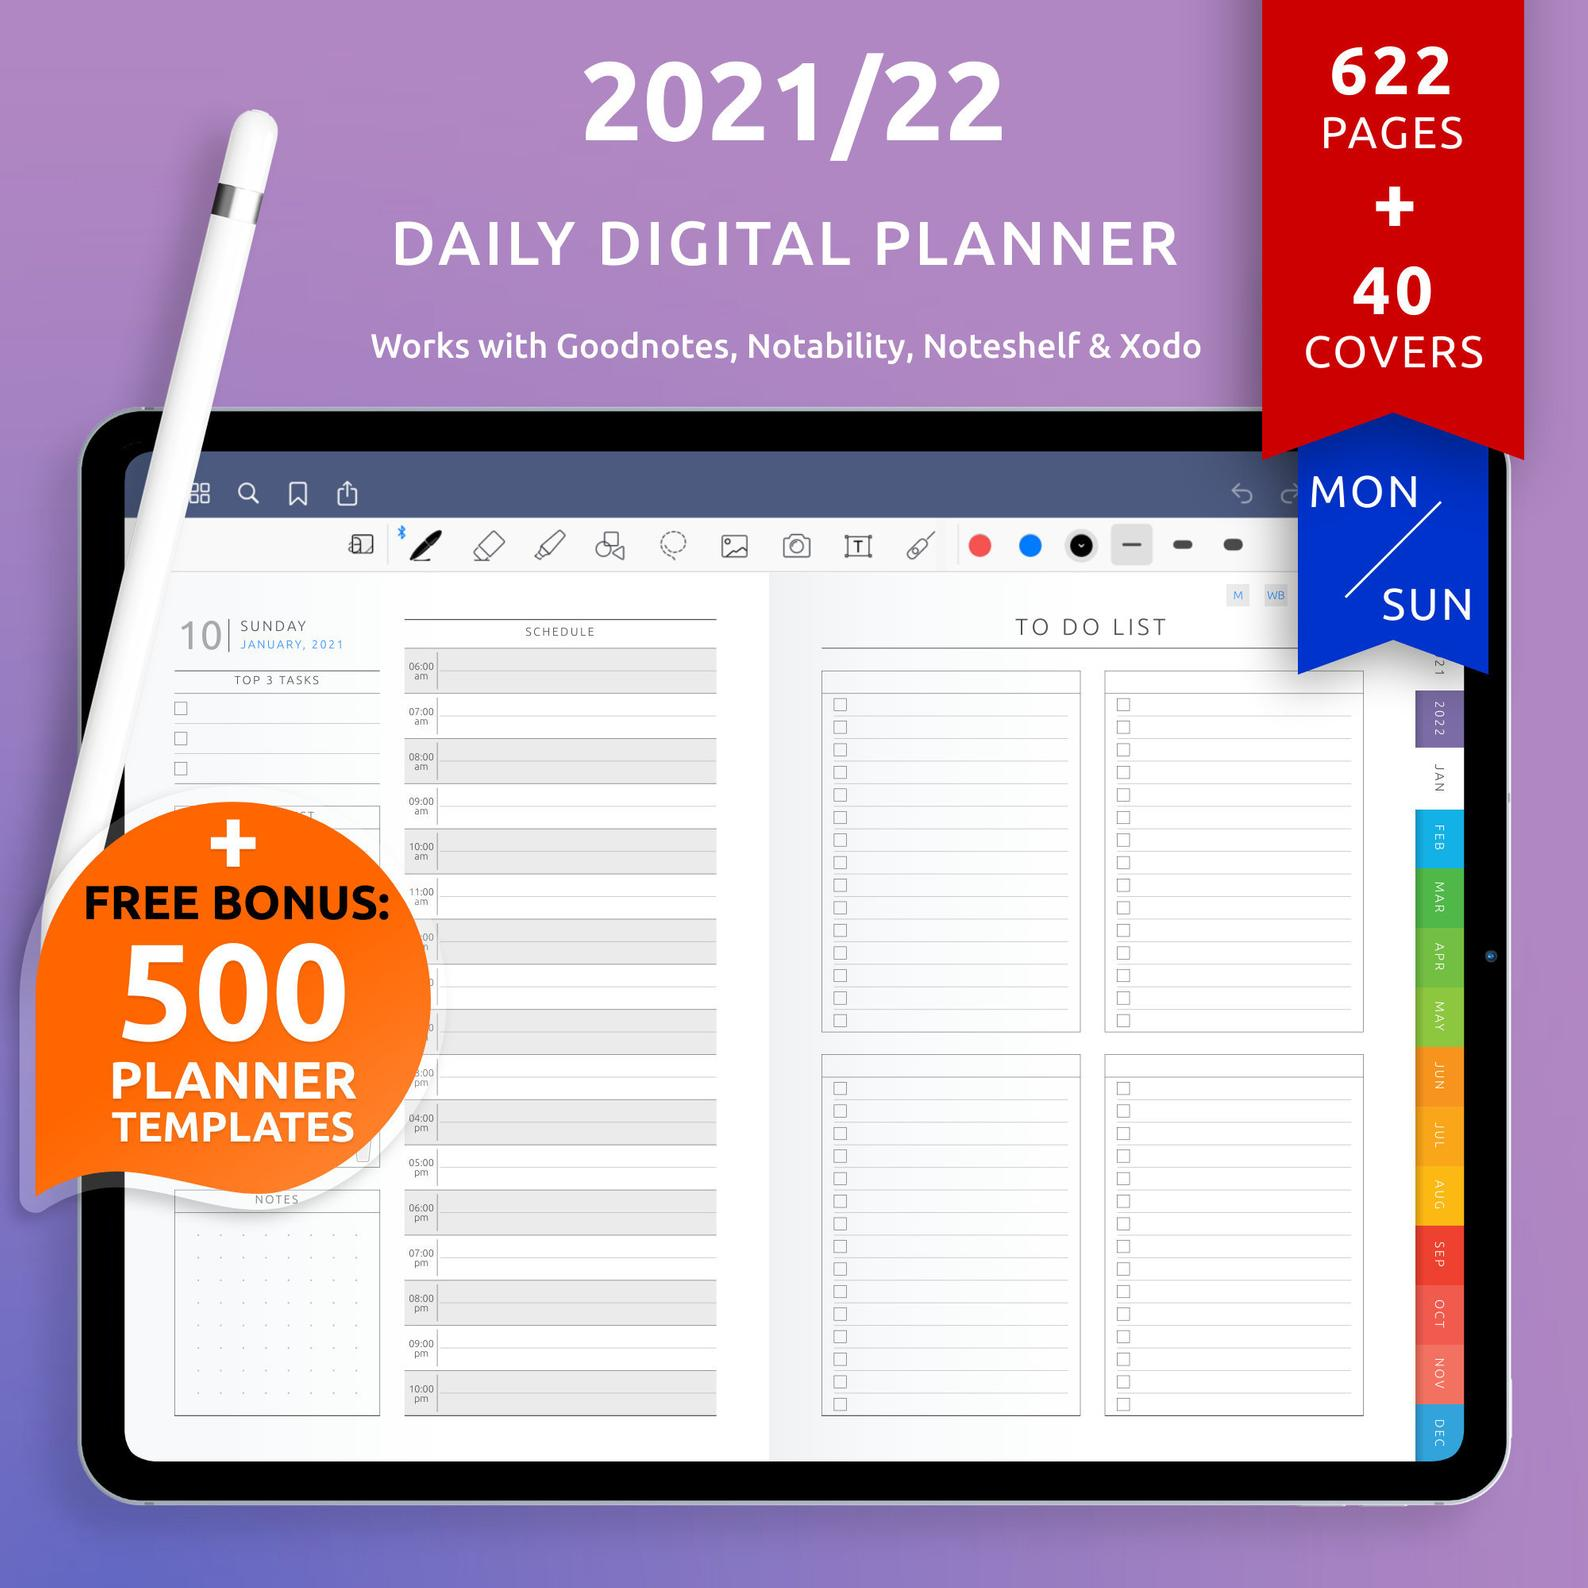 Daily digital planner to download etsy 2021